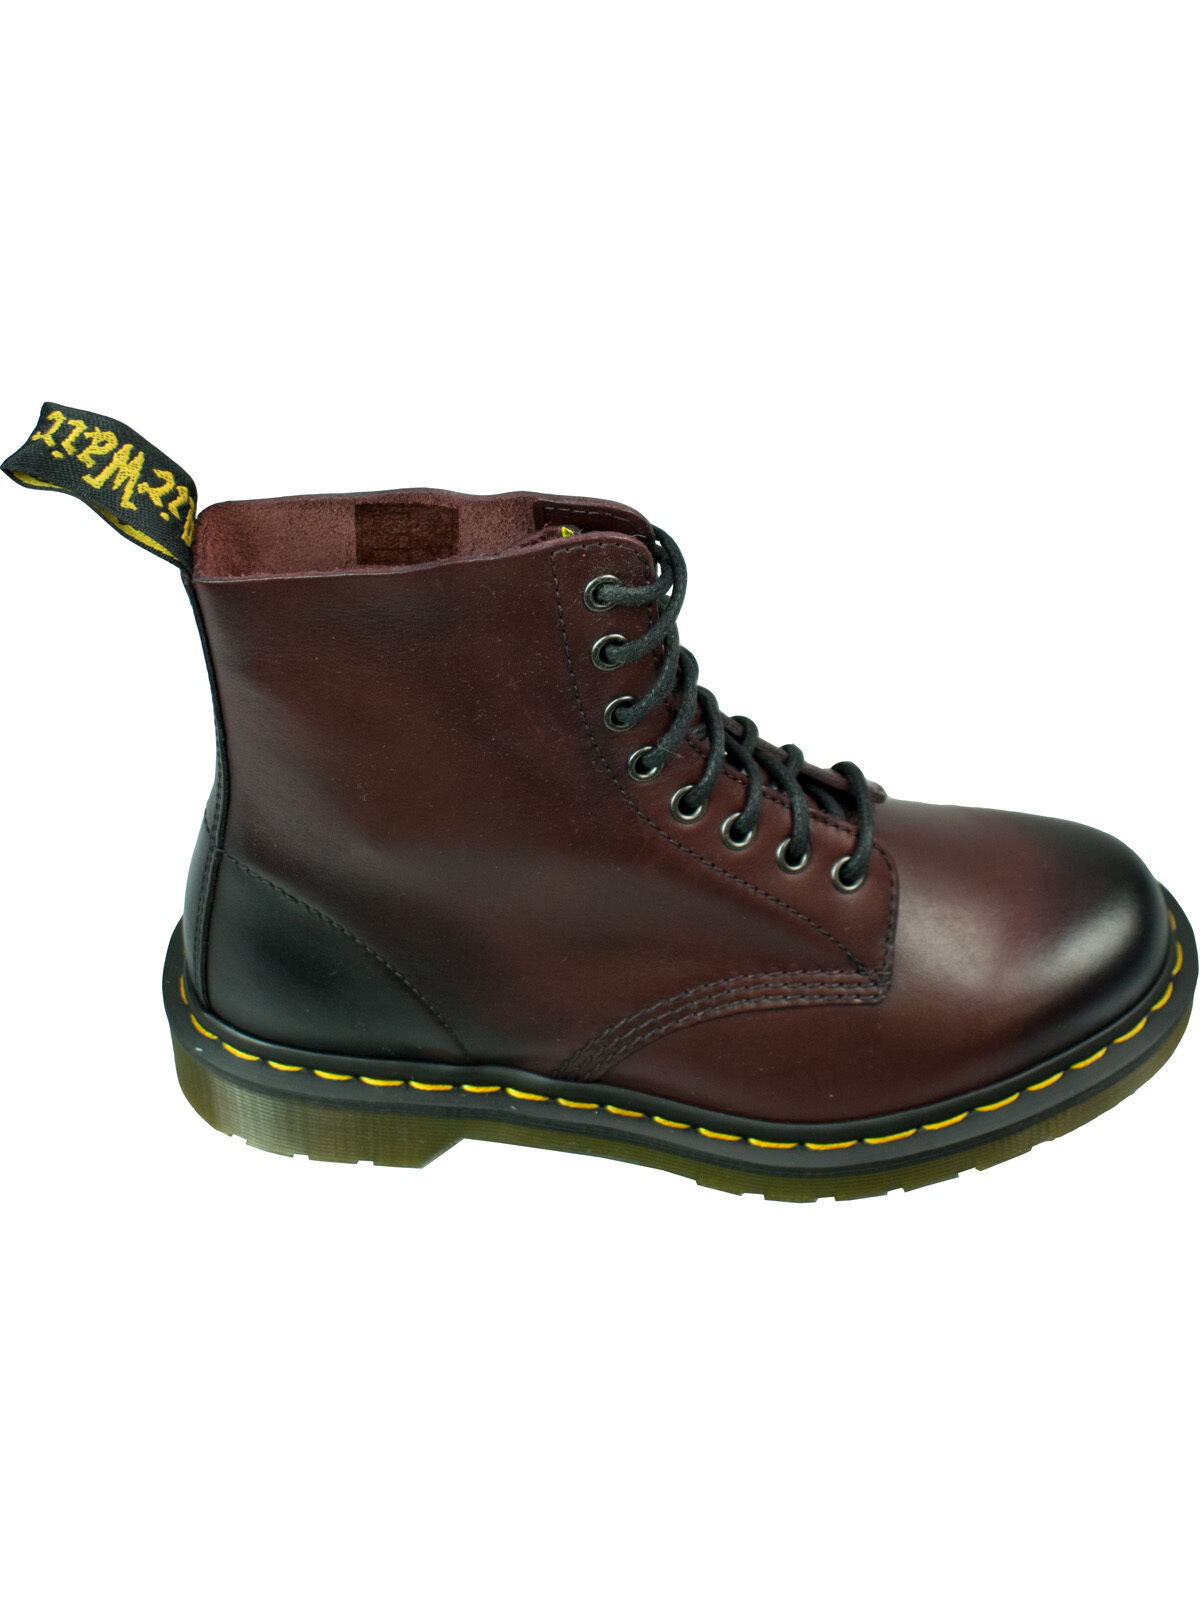 Dr. Martens Boot Doc 8 loch Stiefel Boot Martens Pascal Cherry ROT Antique Temperly CR  #5089 27b6fd